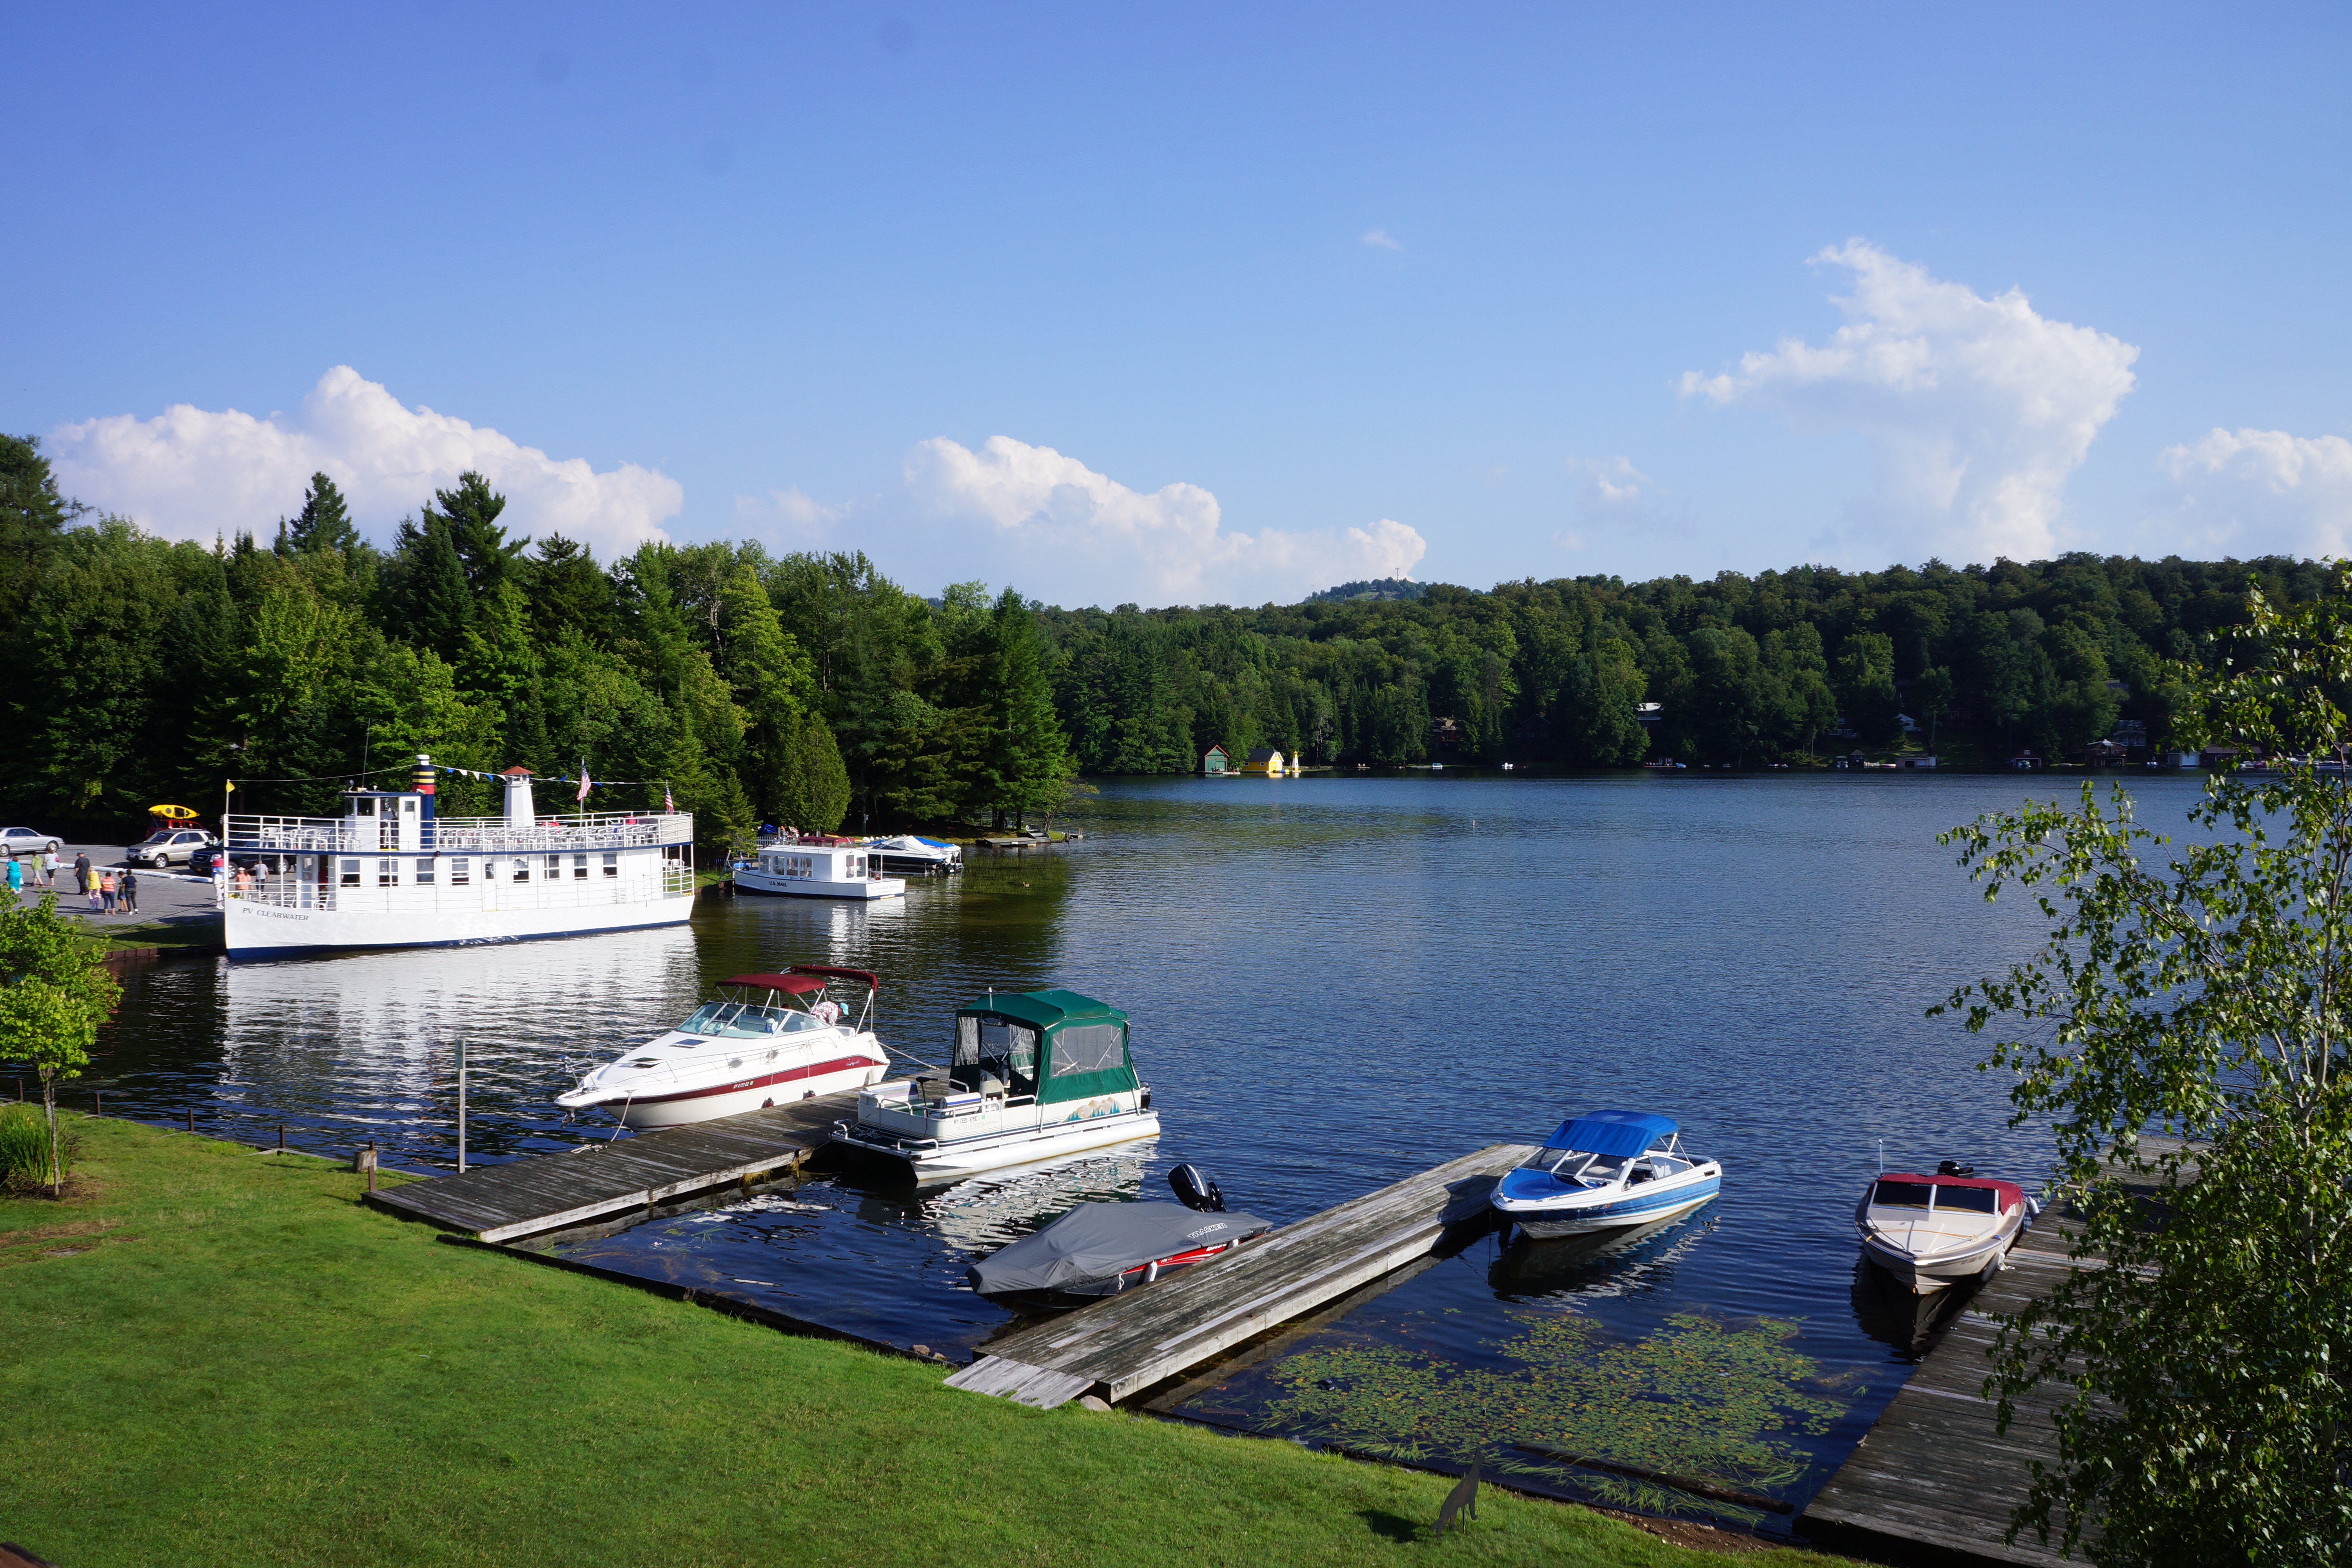 August 11th  Pulaski To Old Forge  Ny